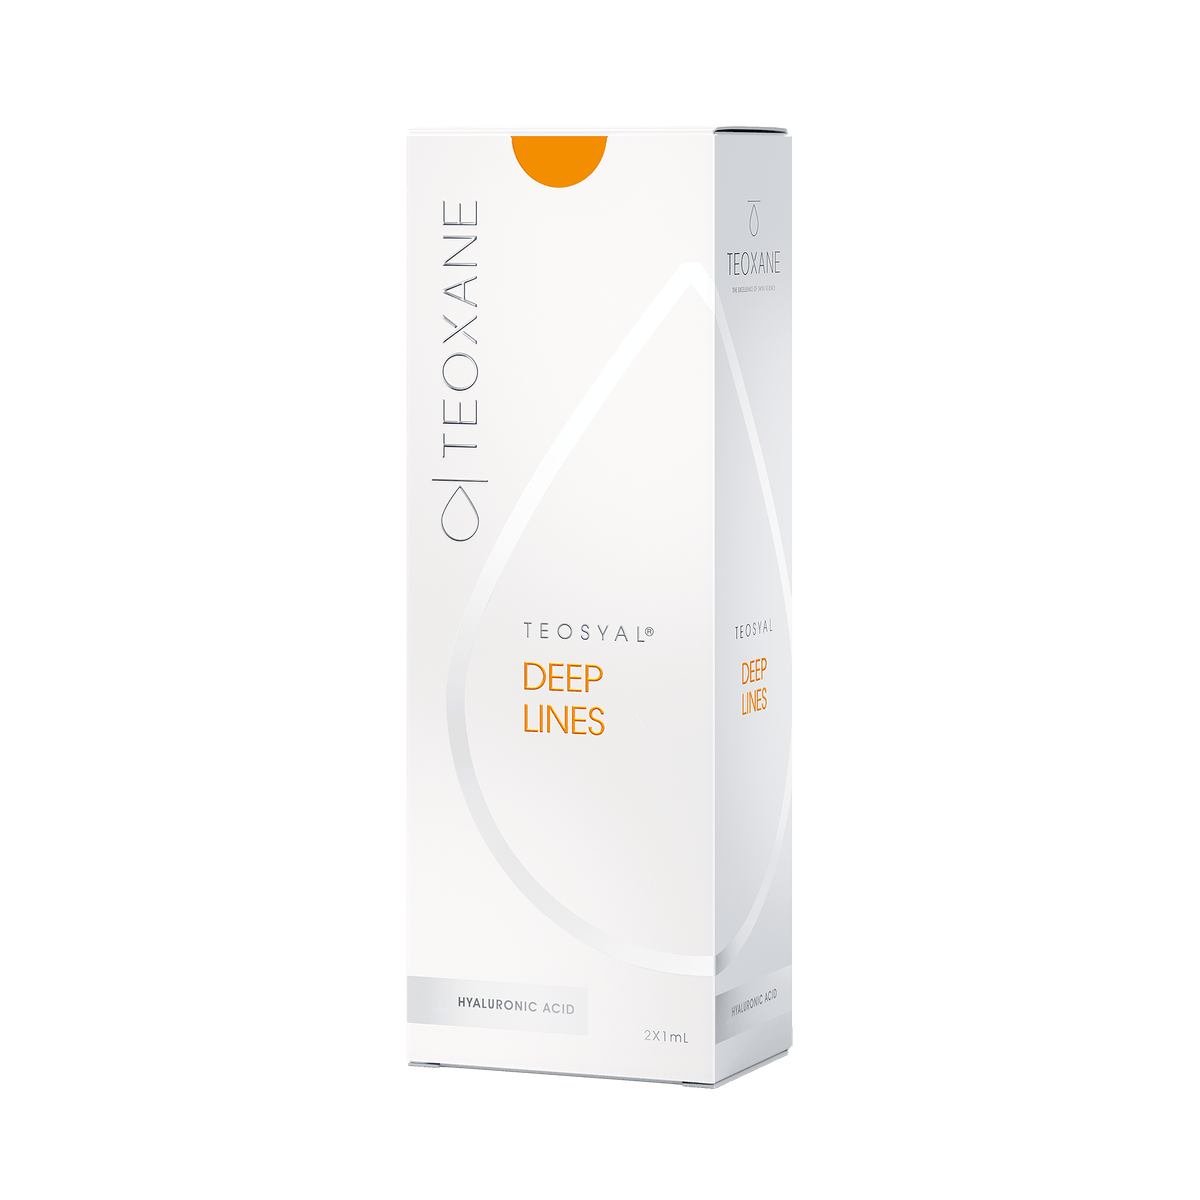 Teoxane - TEOSYAL Deep Lines - DANYCARE